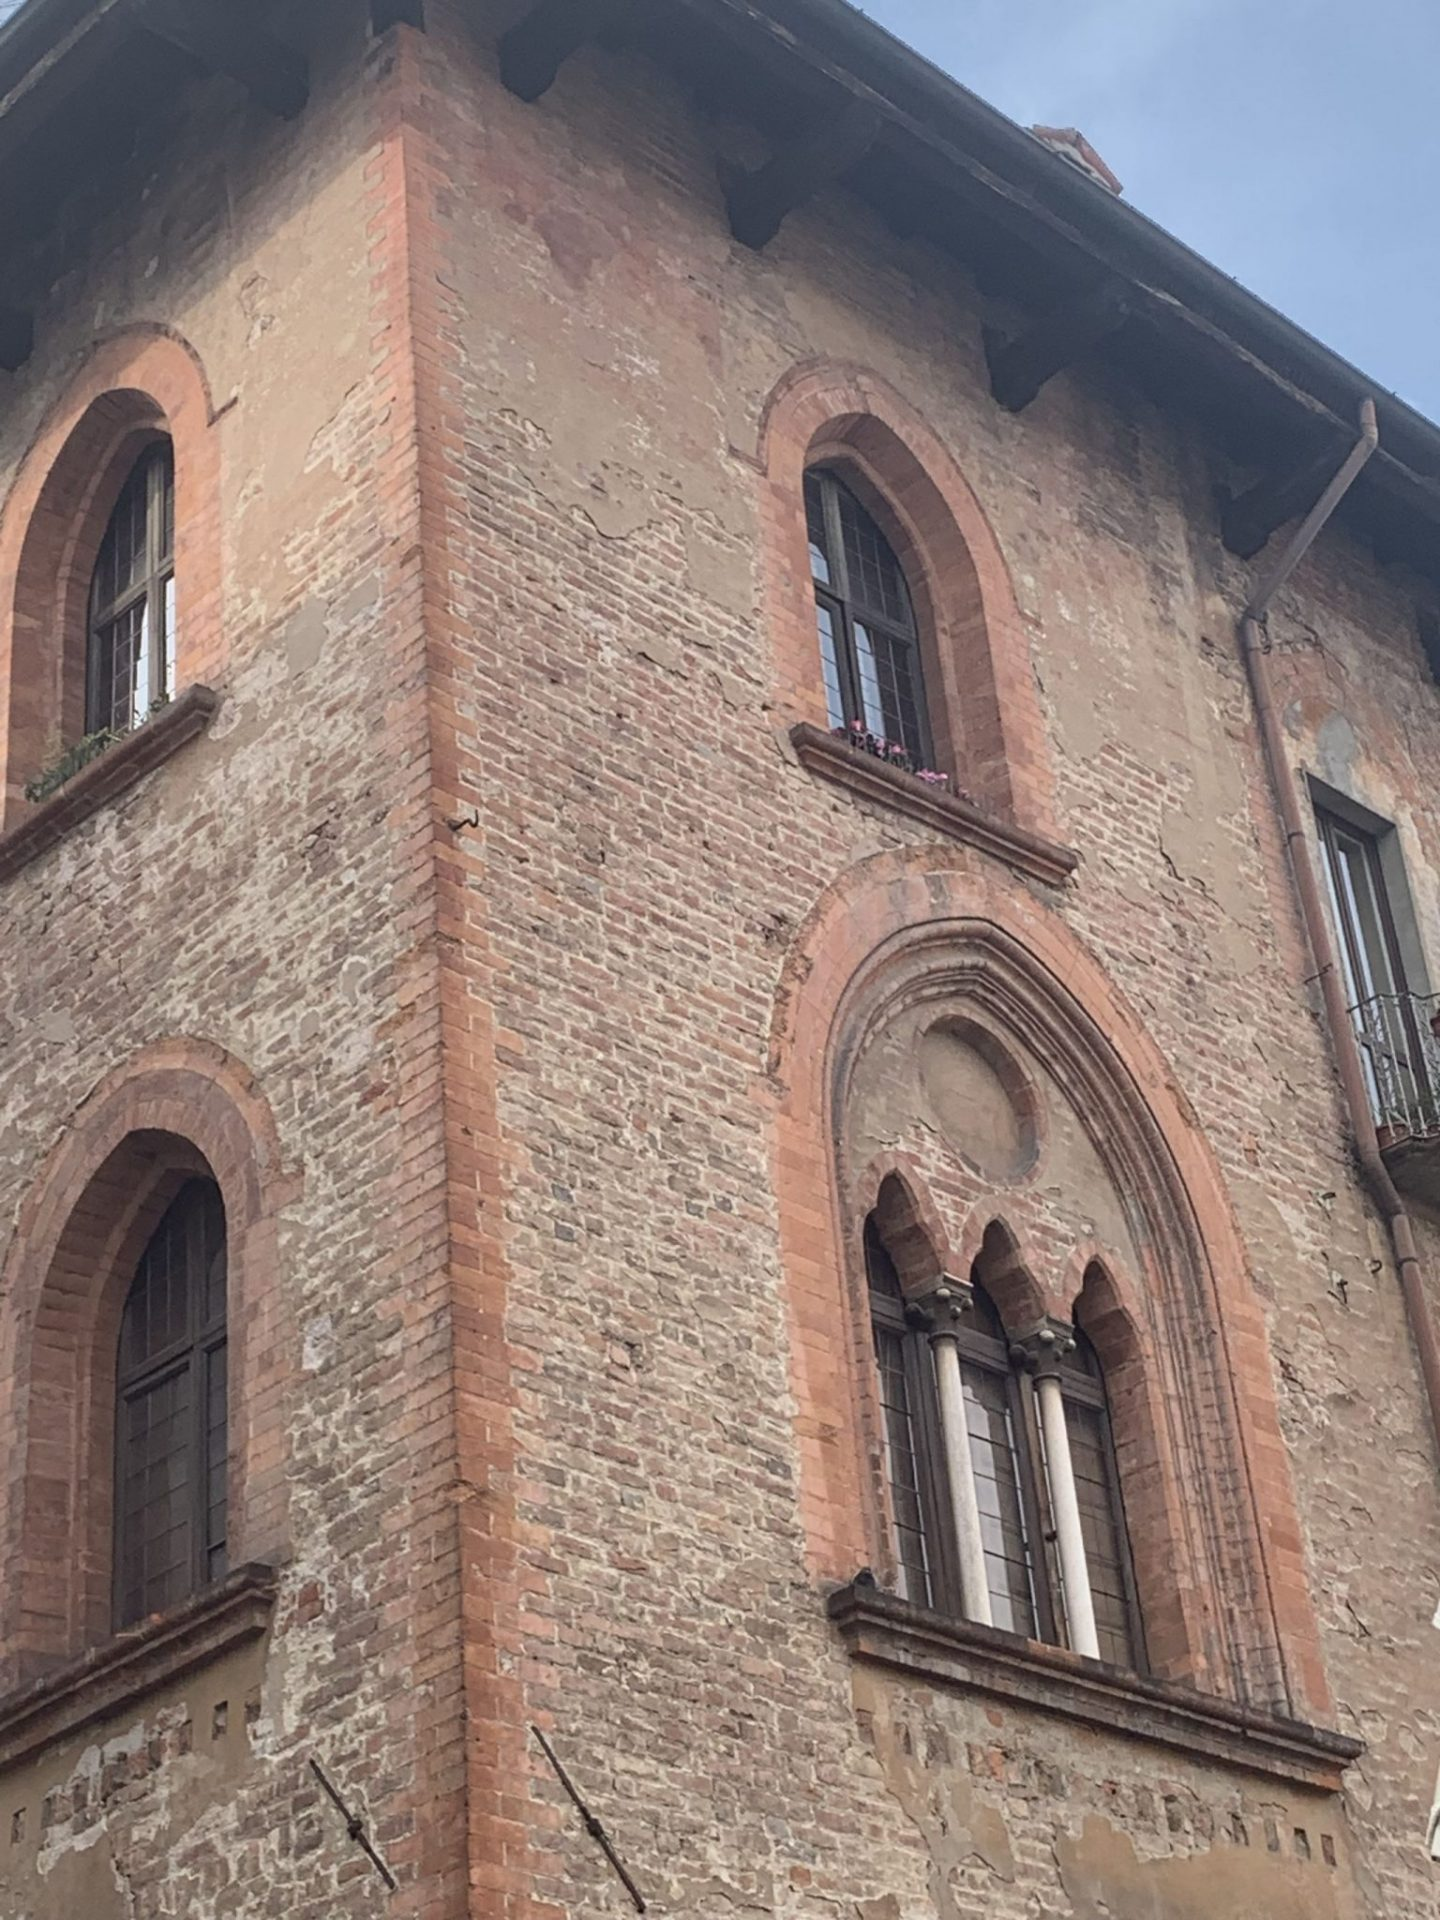 a day in Pavia piazza 3 1440x1920 - A day in Pavia